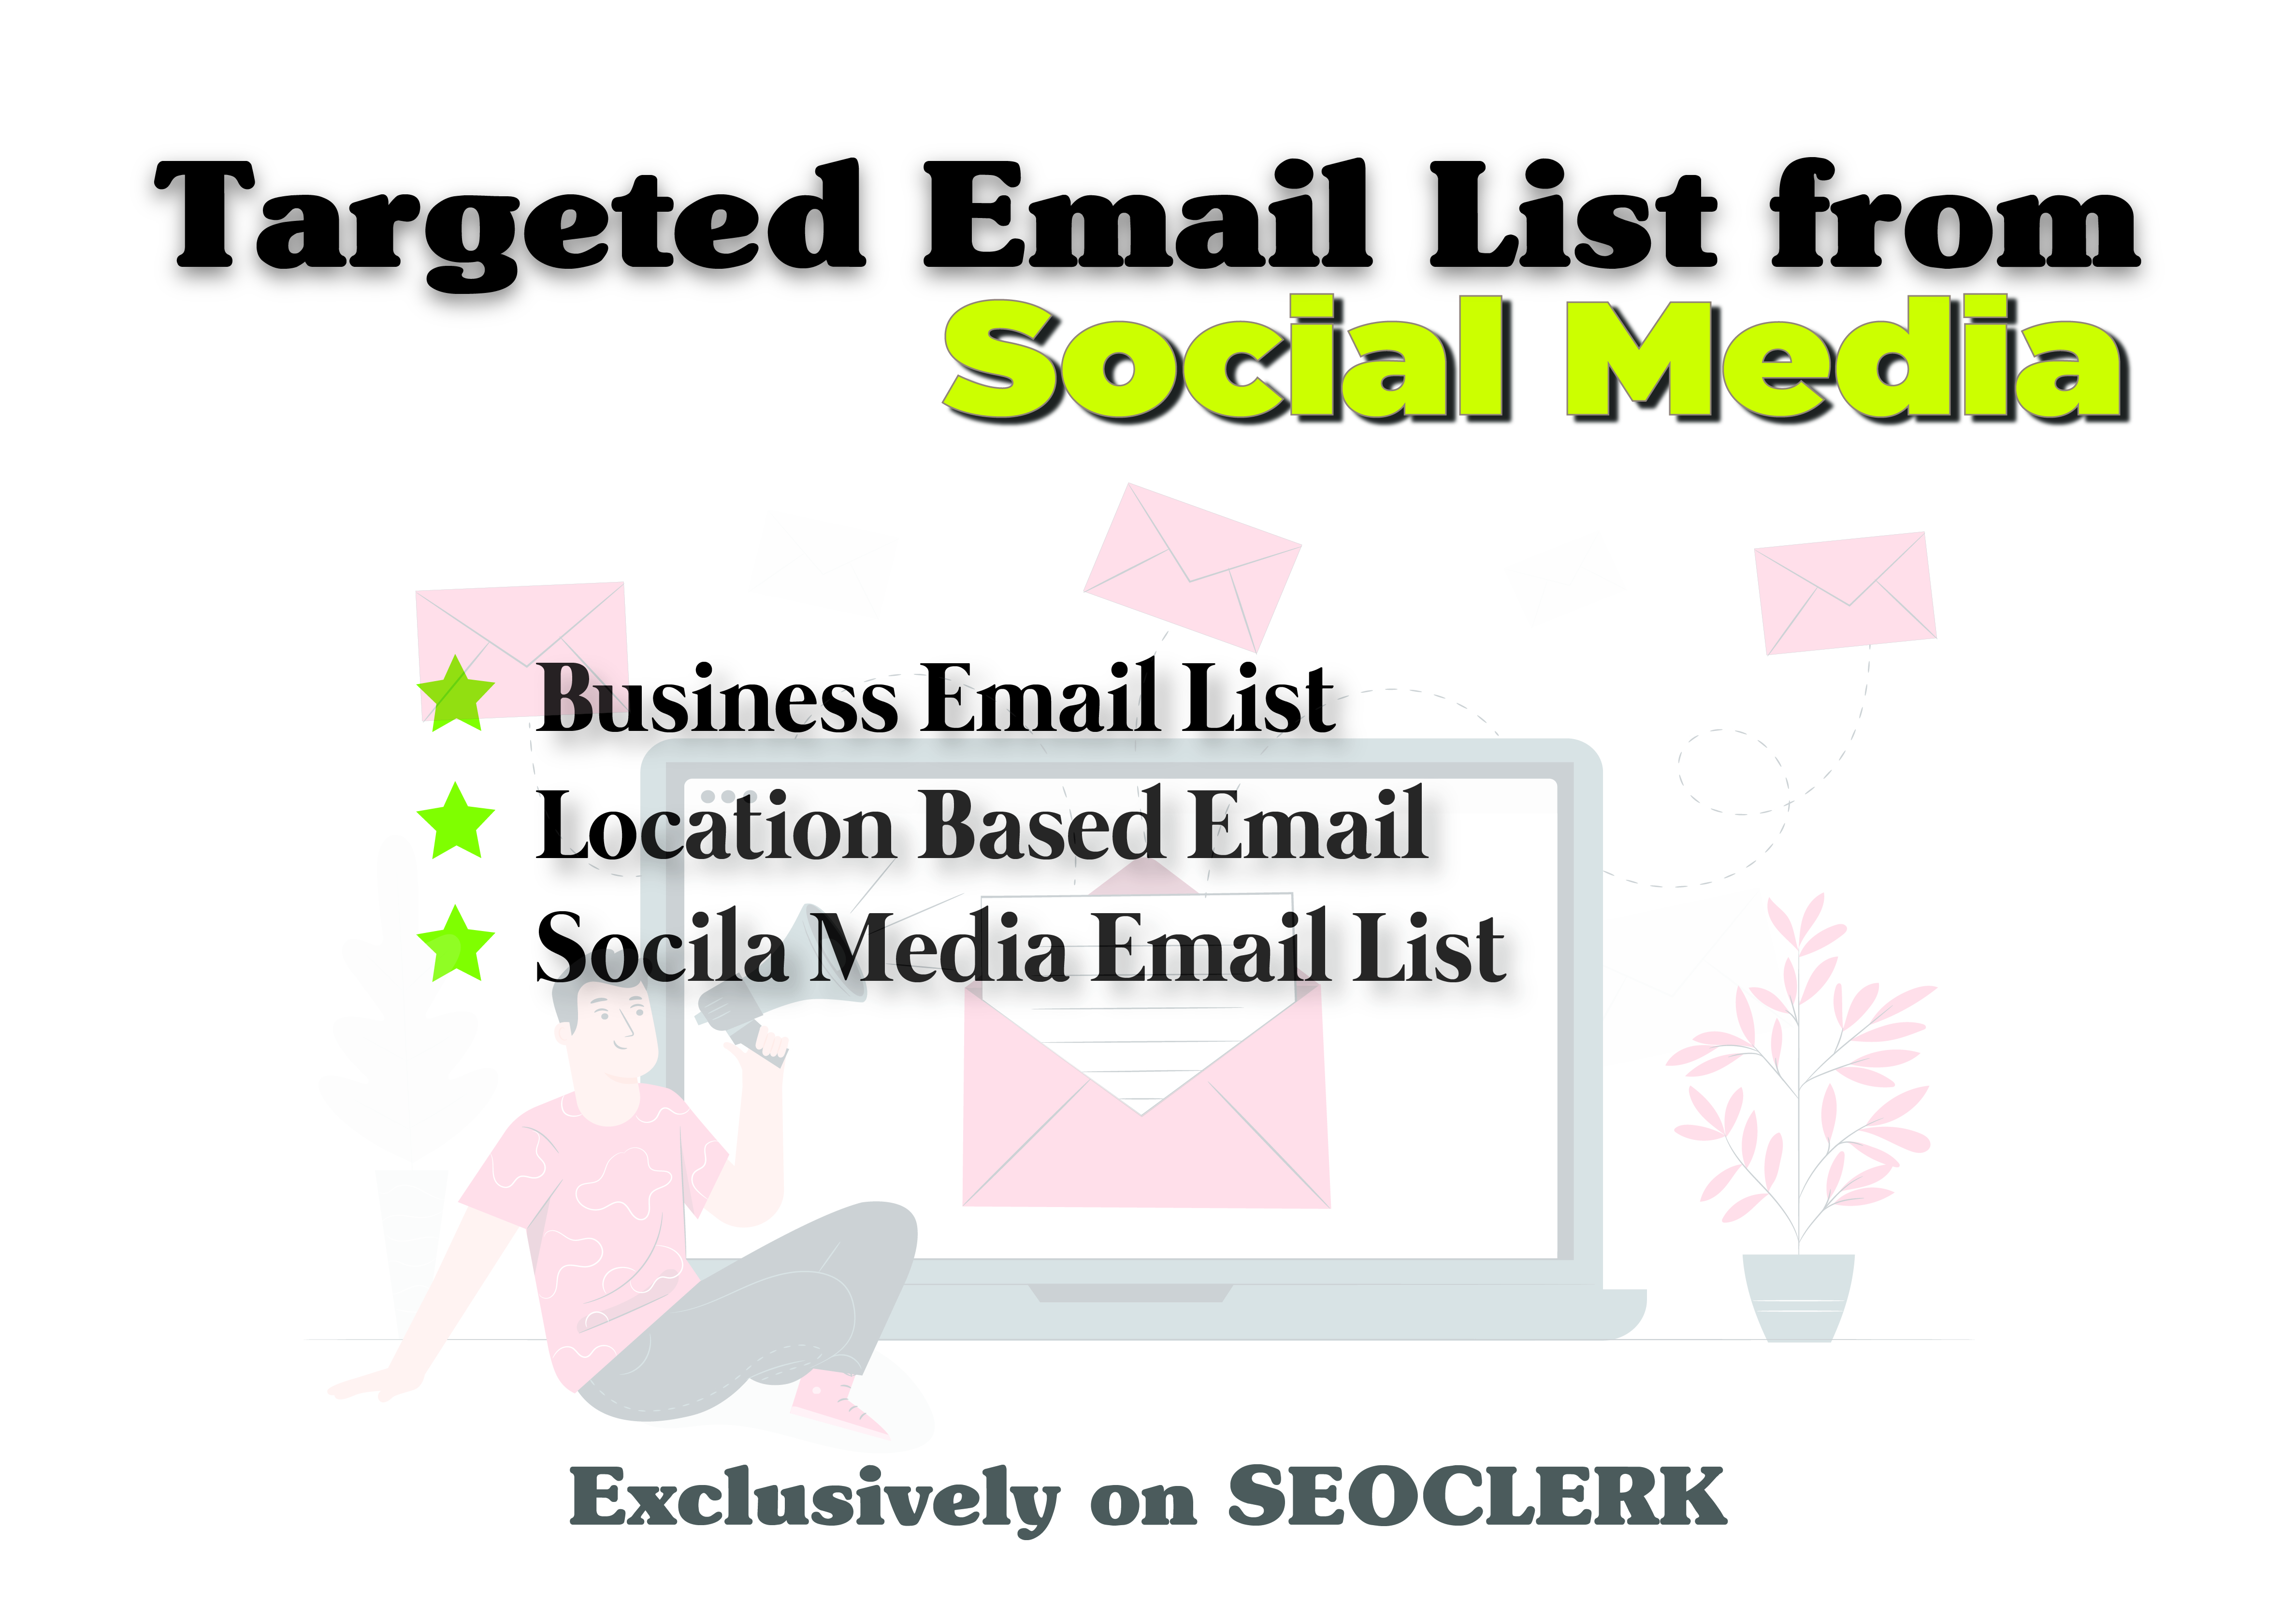 I will scrape 1k niche targeted email list from social media